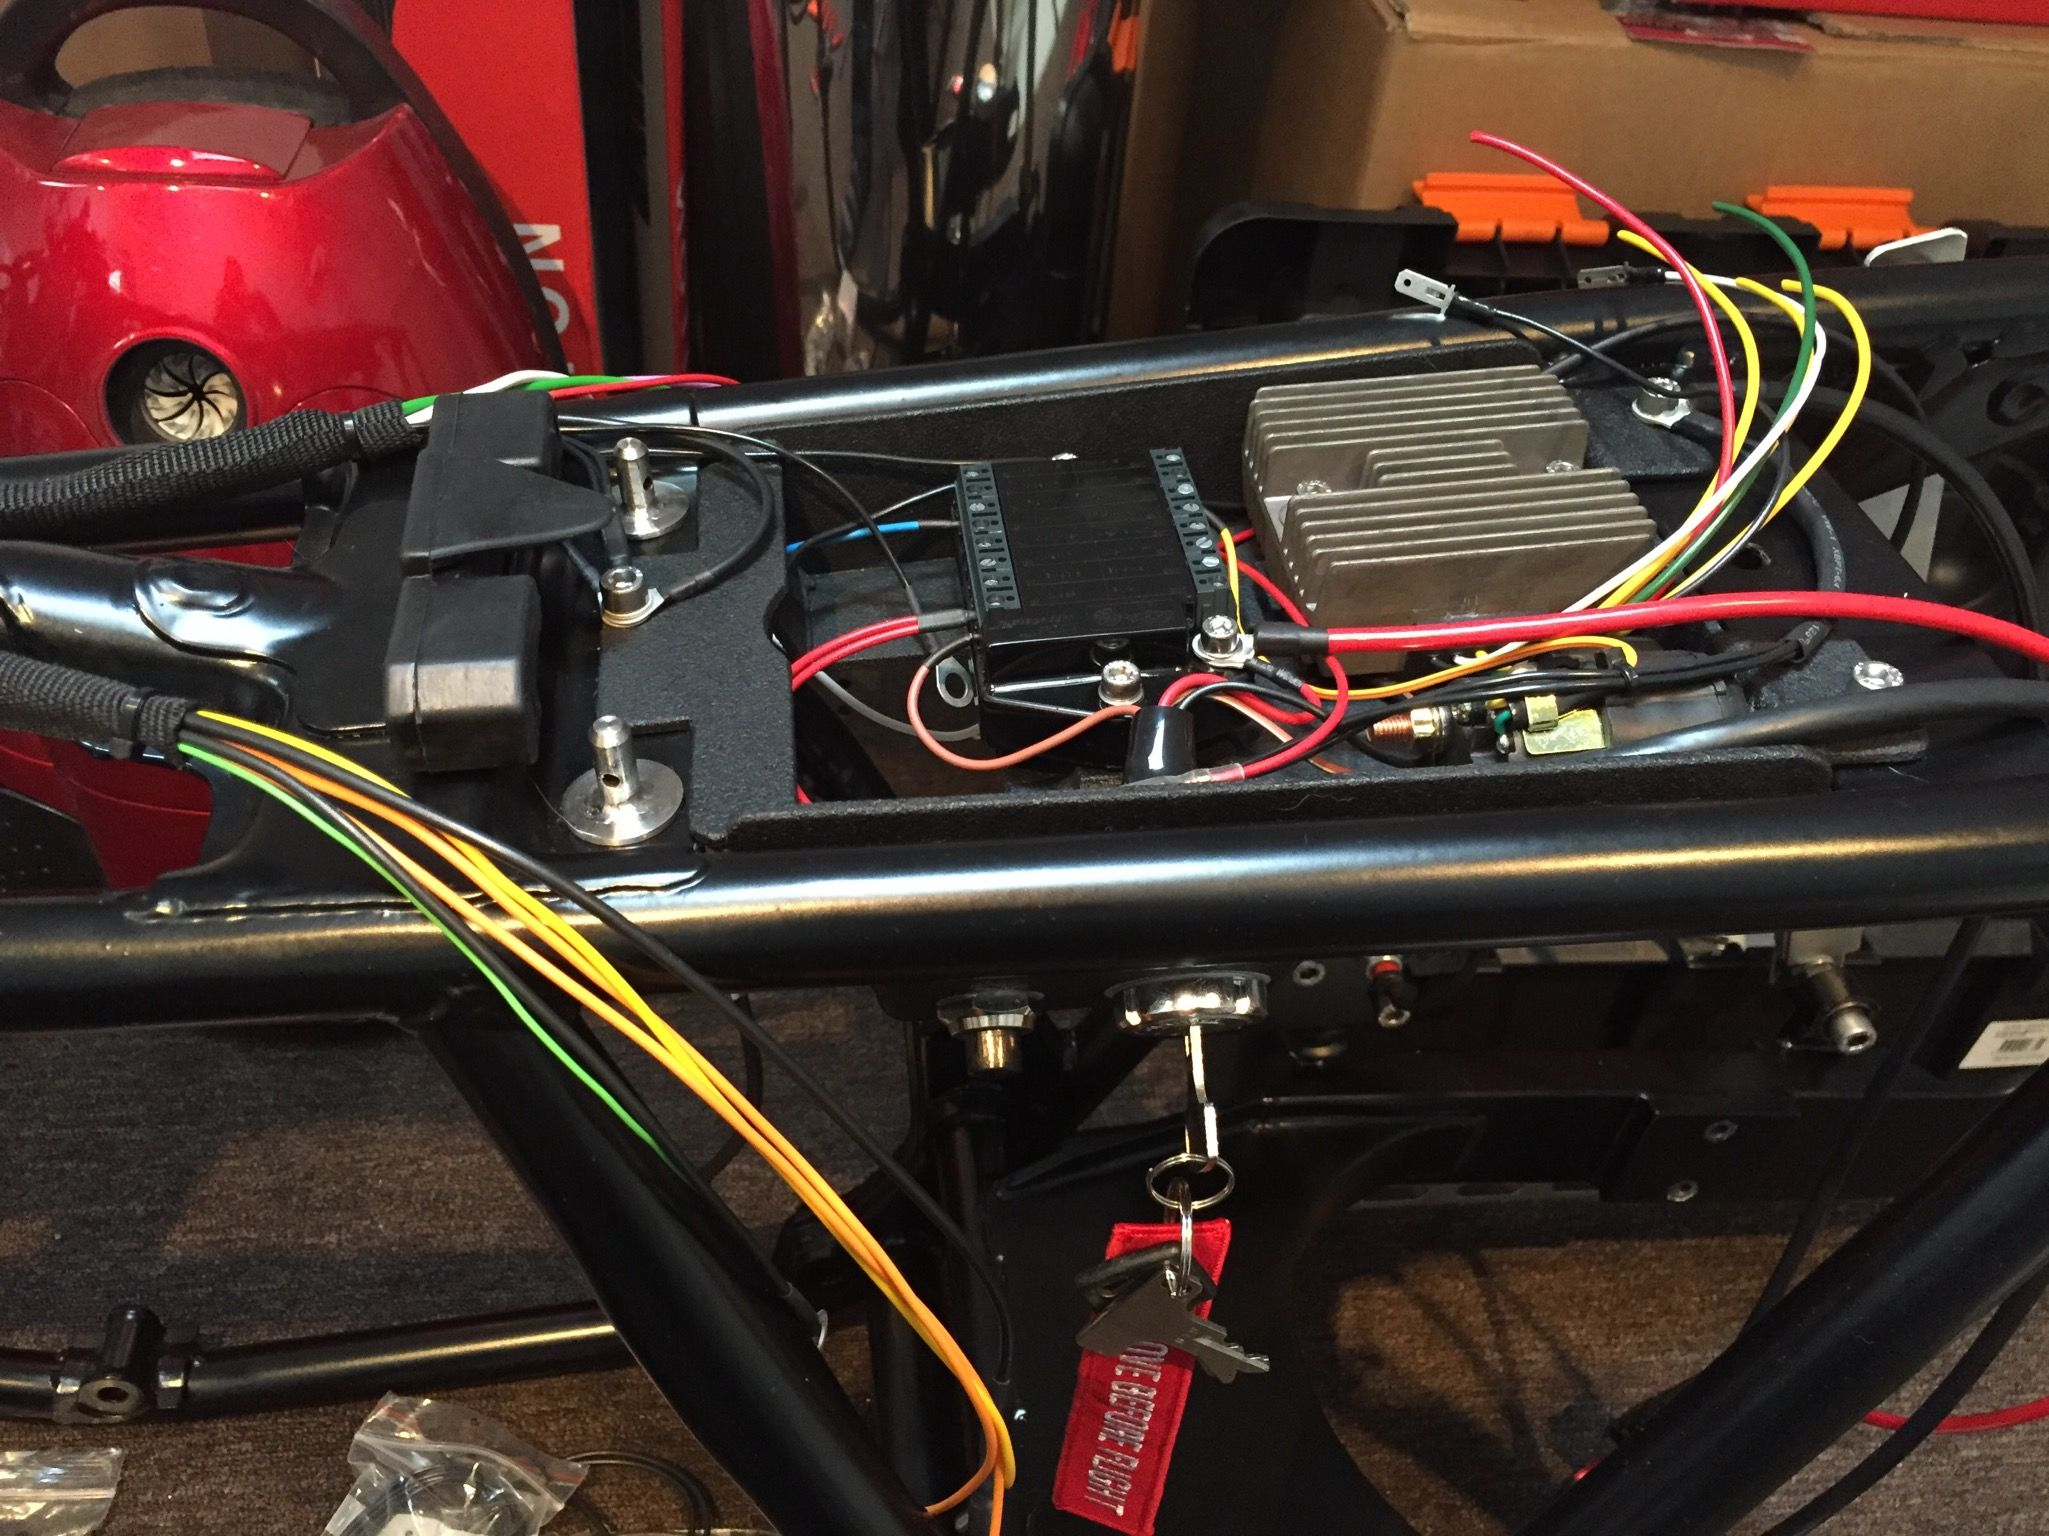 Hide Wiring Headlight Cafe Racer : Wiring the bike with m unit from motogadget